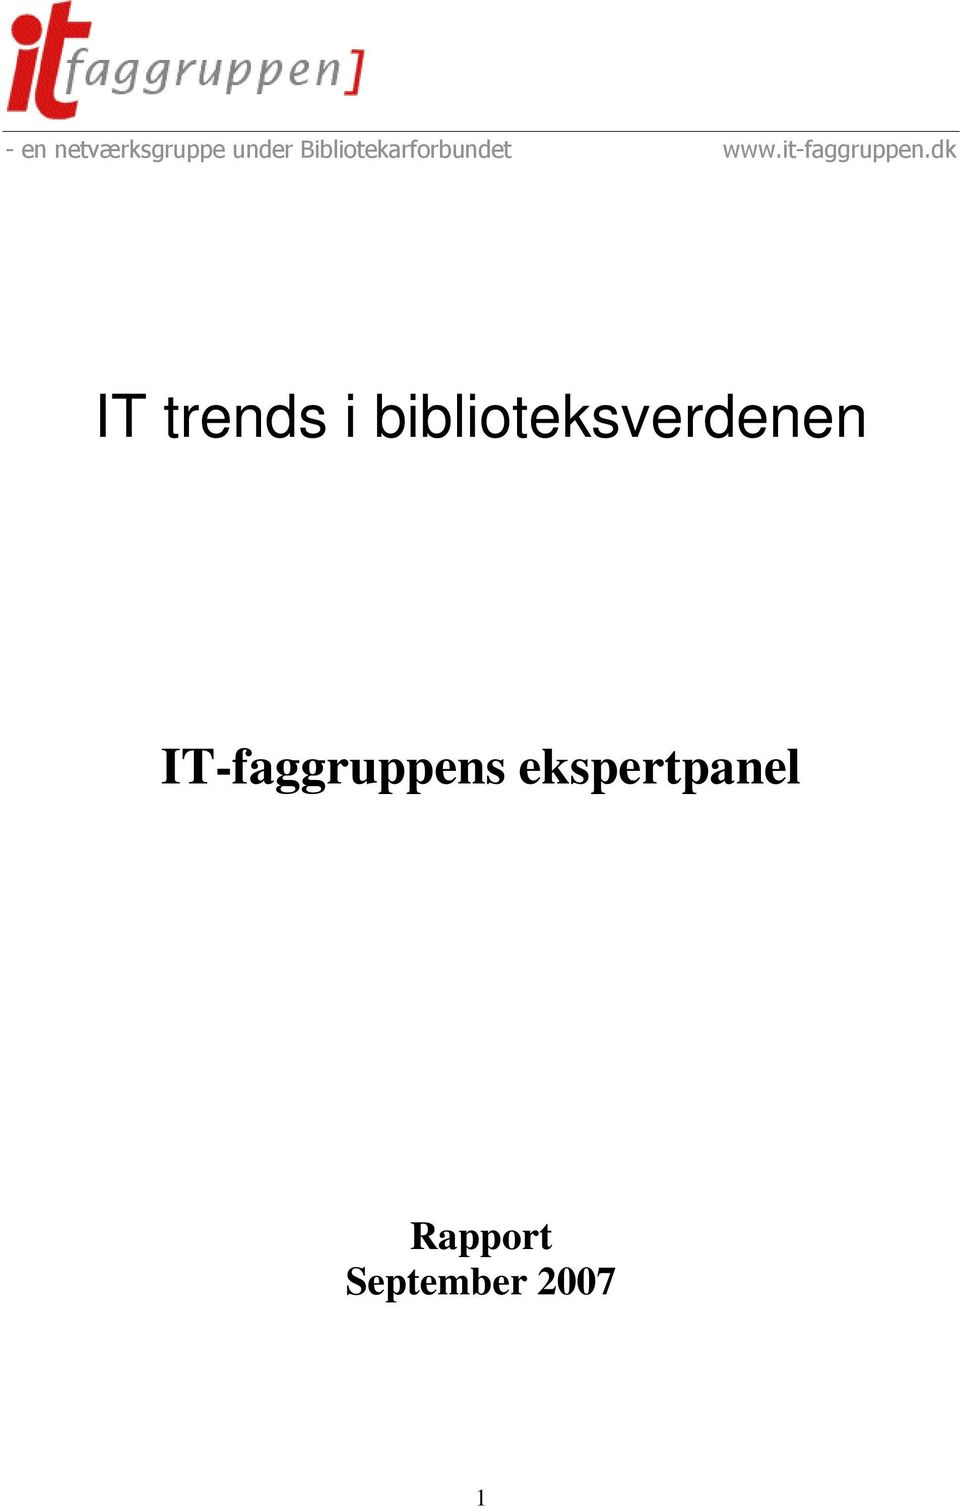 IT-faggruppens